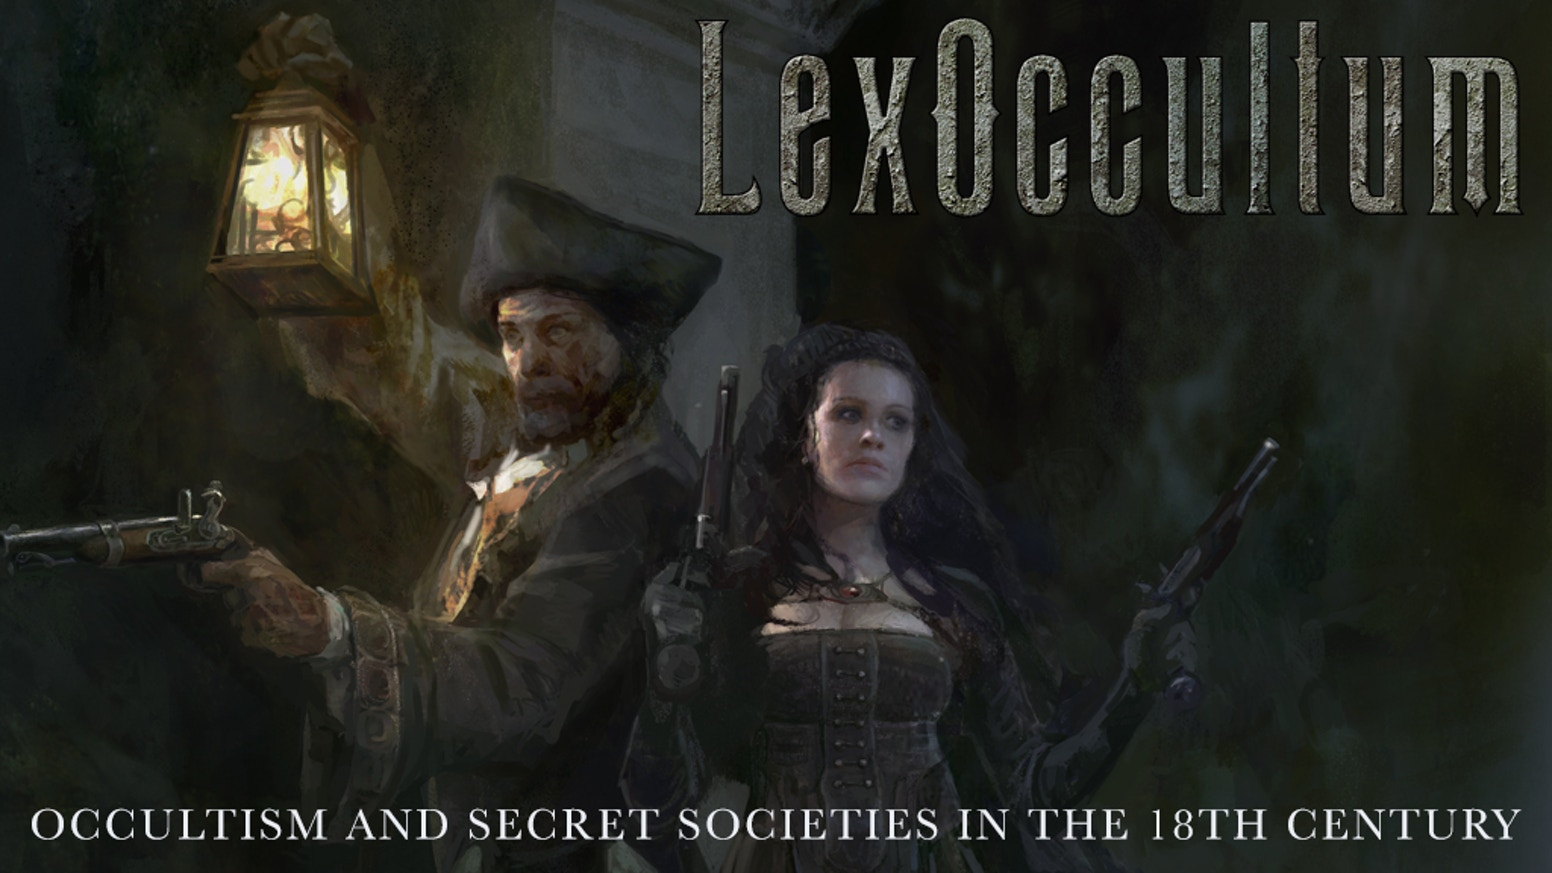 LexOccultum  -  AWARD WINNING GAME about occultism, mysteries and secret societies in an 18th century setting. Load your flintlocks!